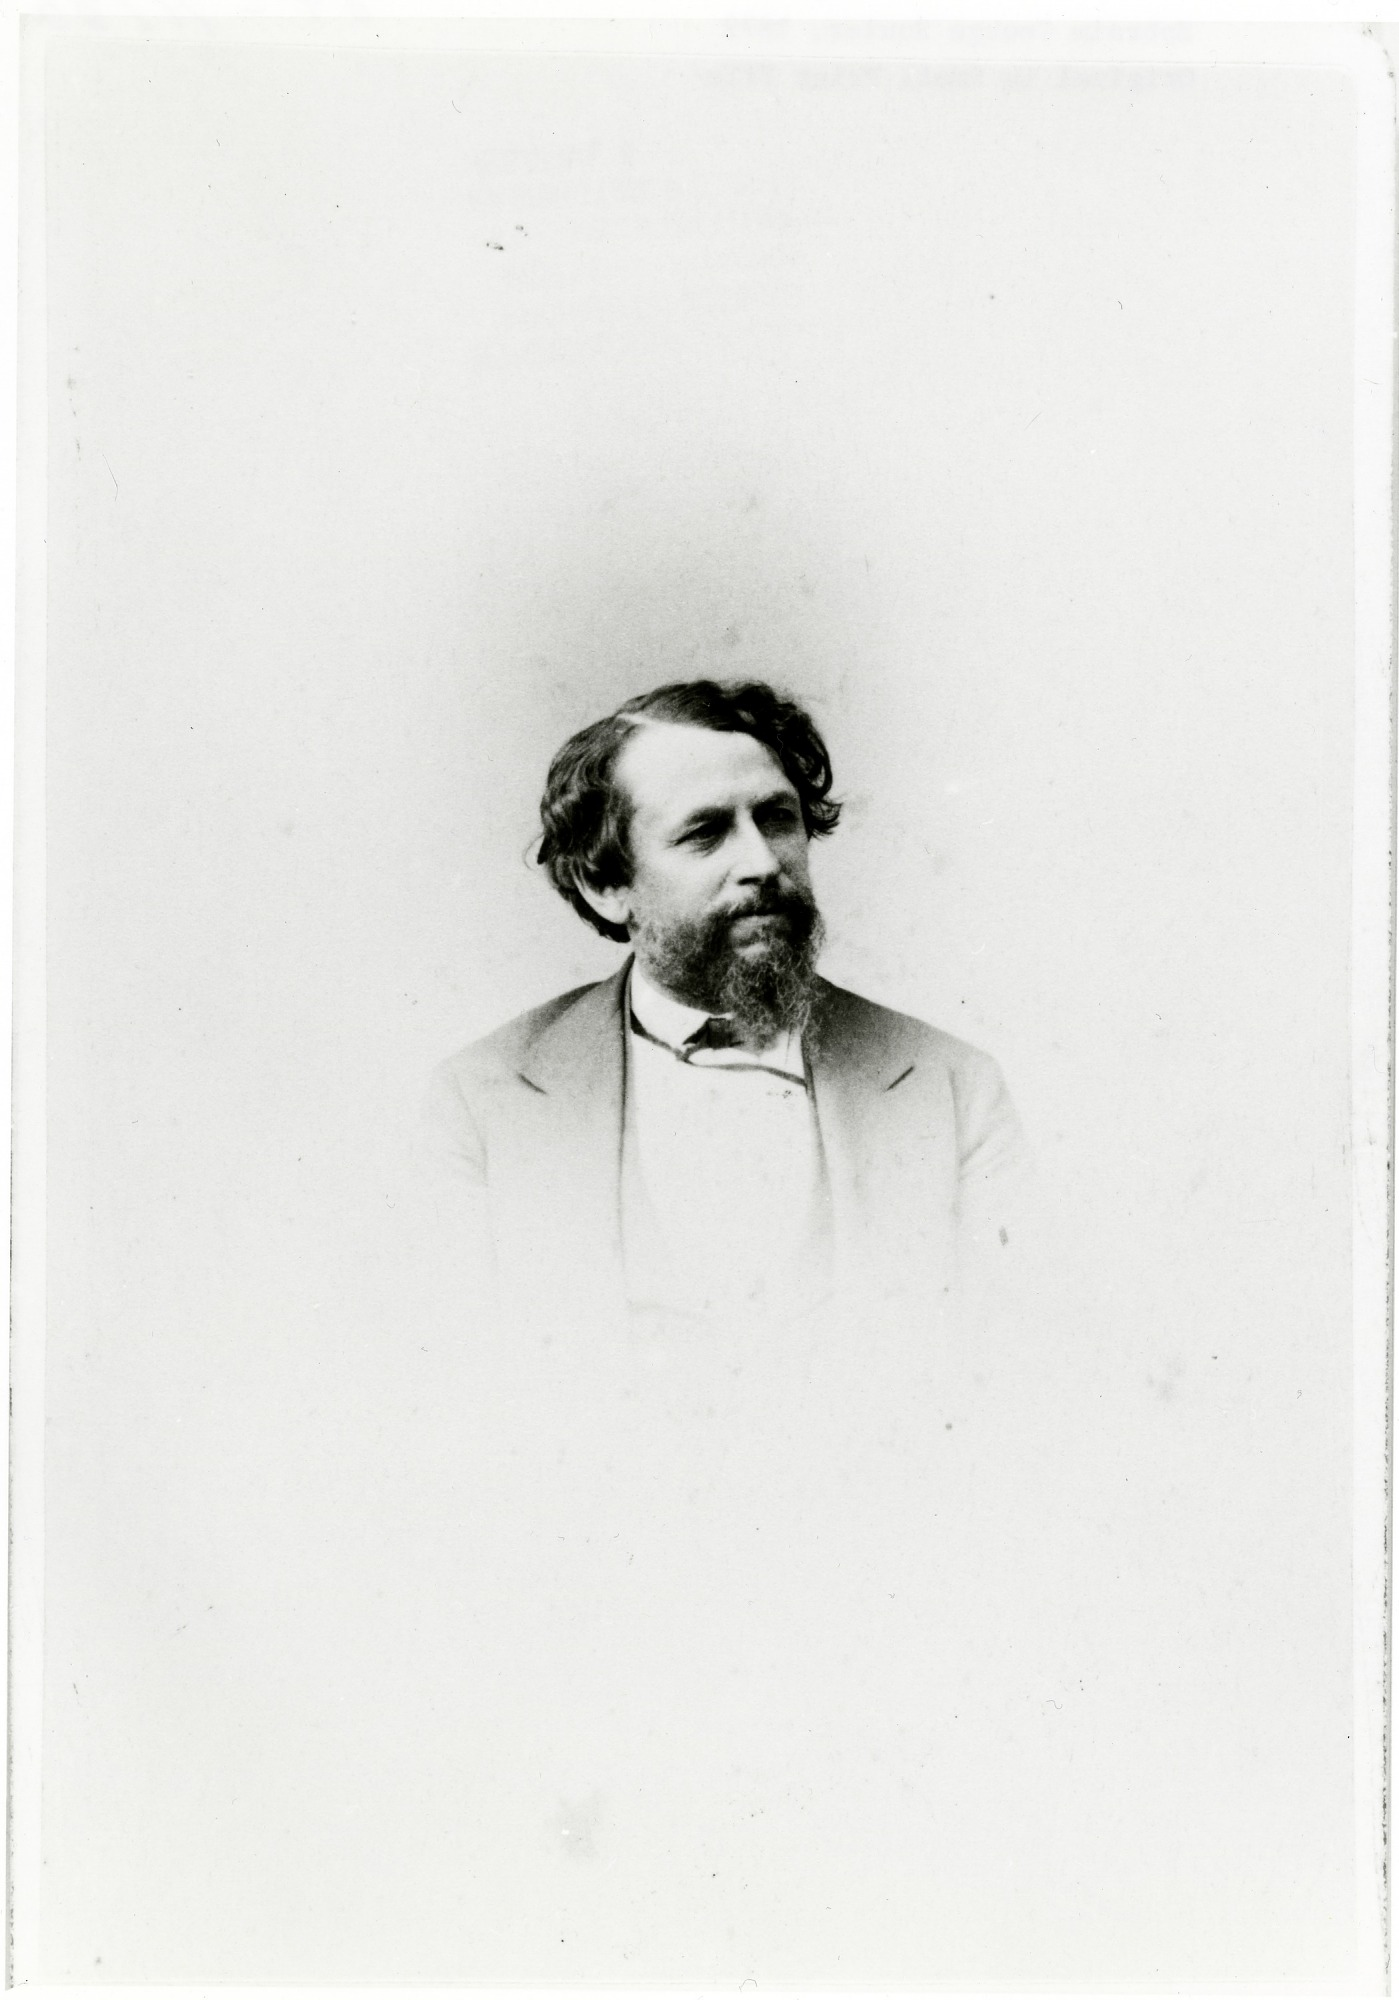 Ephraim George Squier, by Joseph Henry Papers Project, 1872, Smithsonian Archives - History Div, SIA2012-6120 or 84-11135.